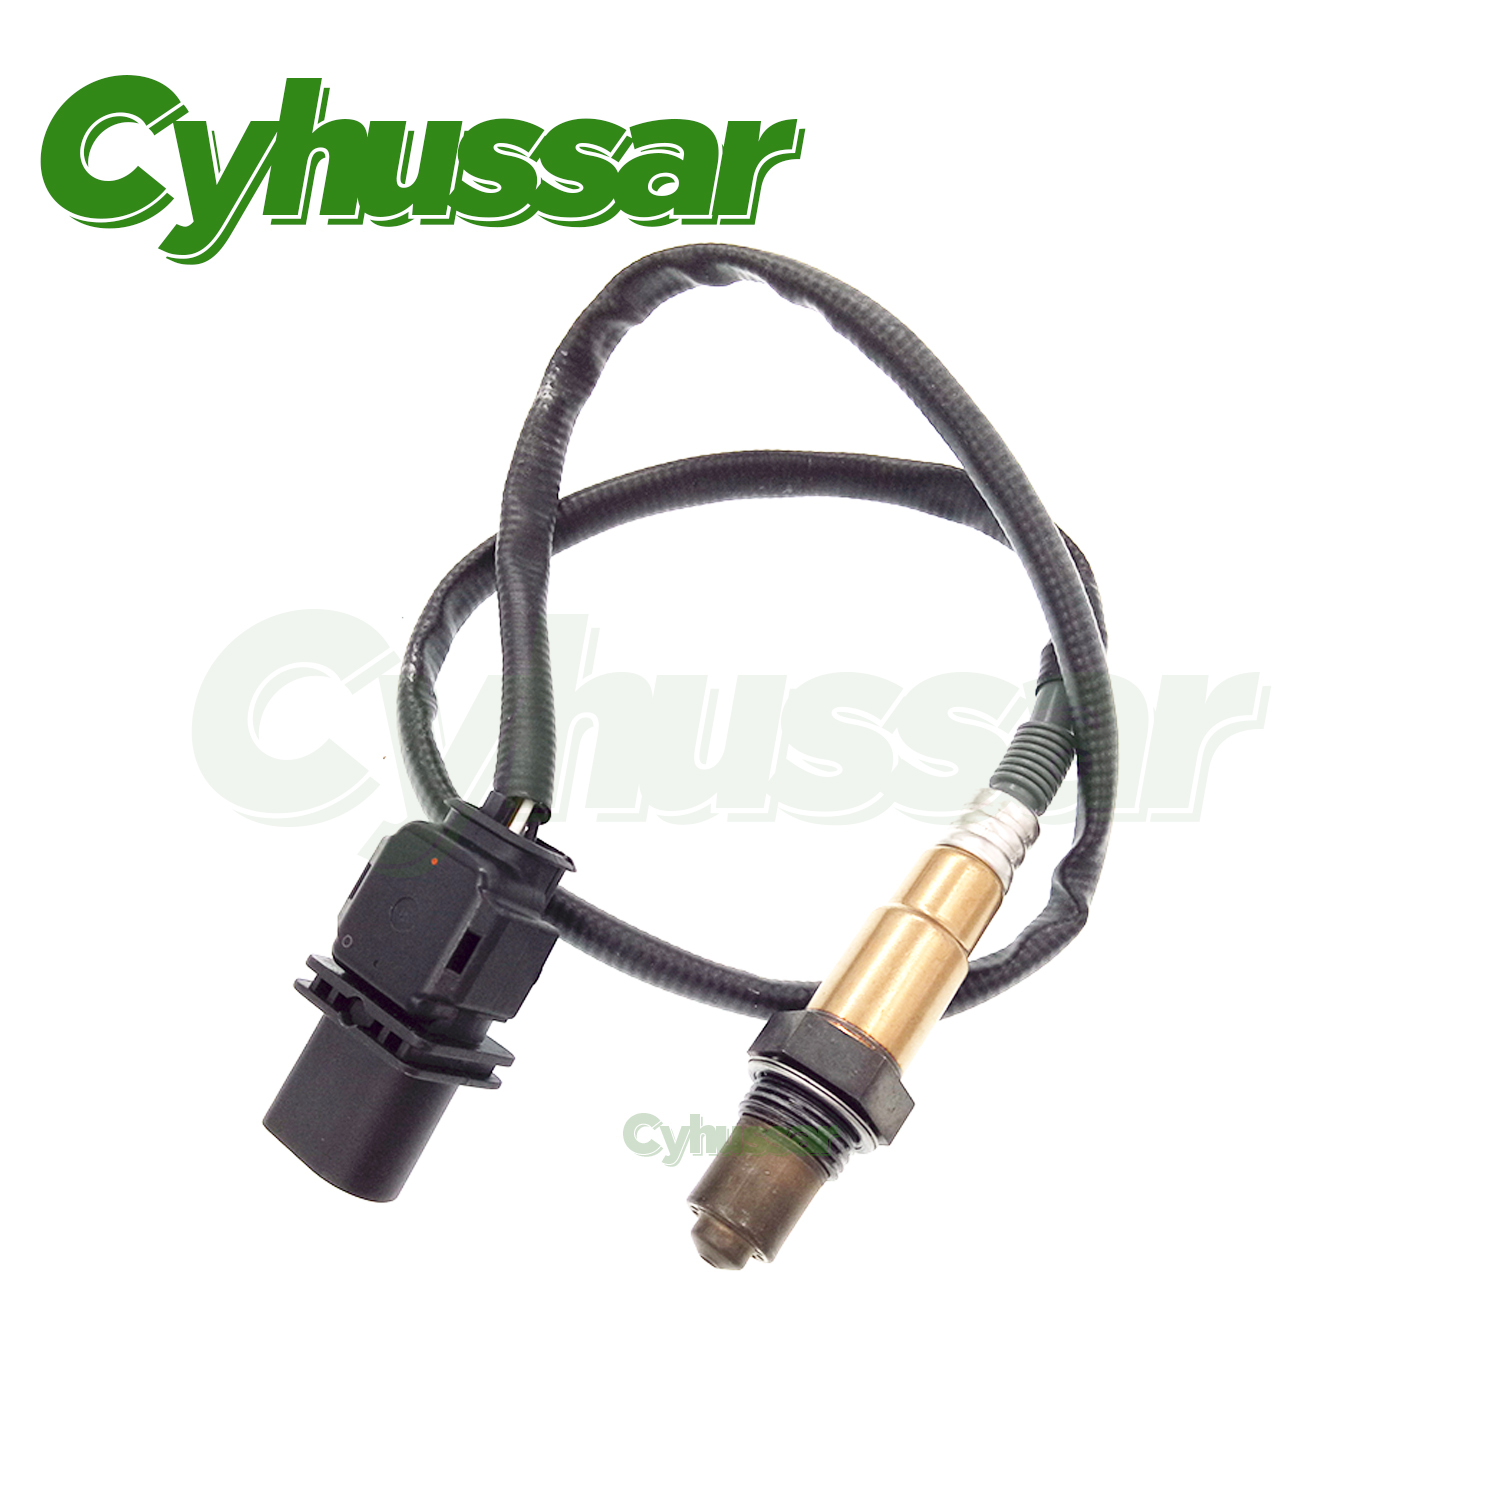 O2 Oxygen Sensor Fit For Peugeot 207 208 308 508 1.4 1.6 0258017027 11787560957 LSU4.9 2007-2013 Upstream Front Wideband Lambda